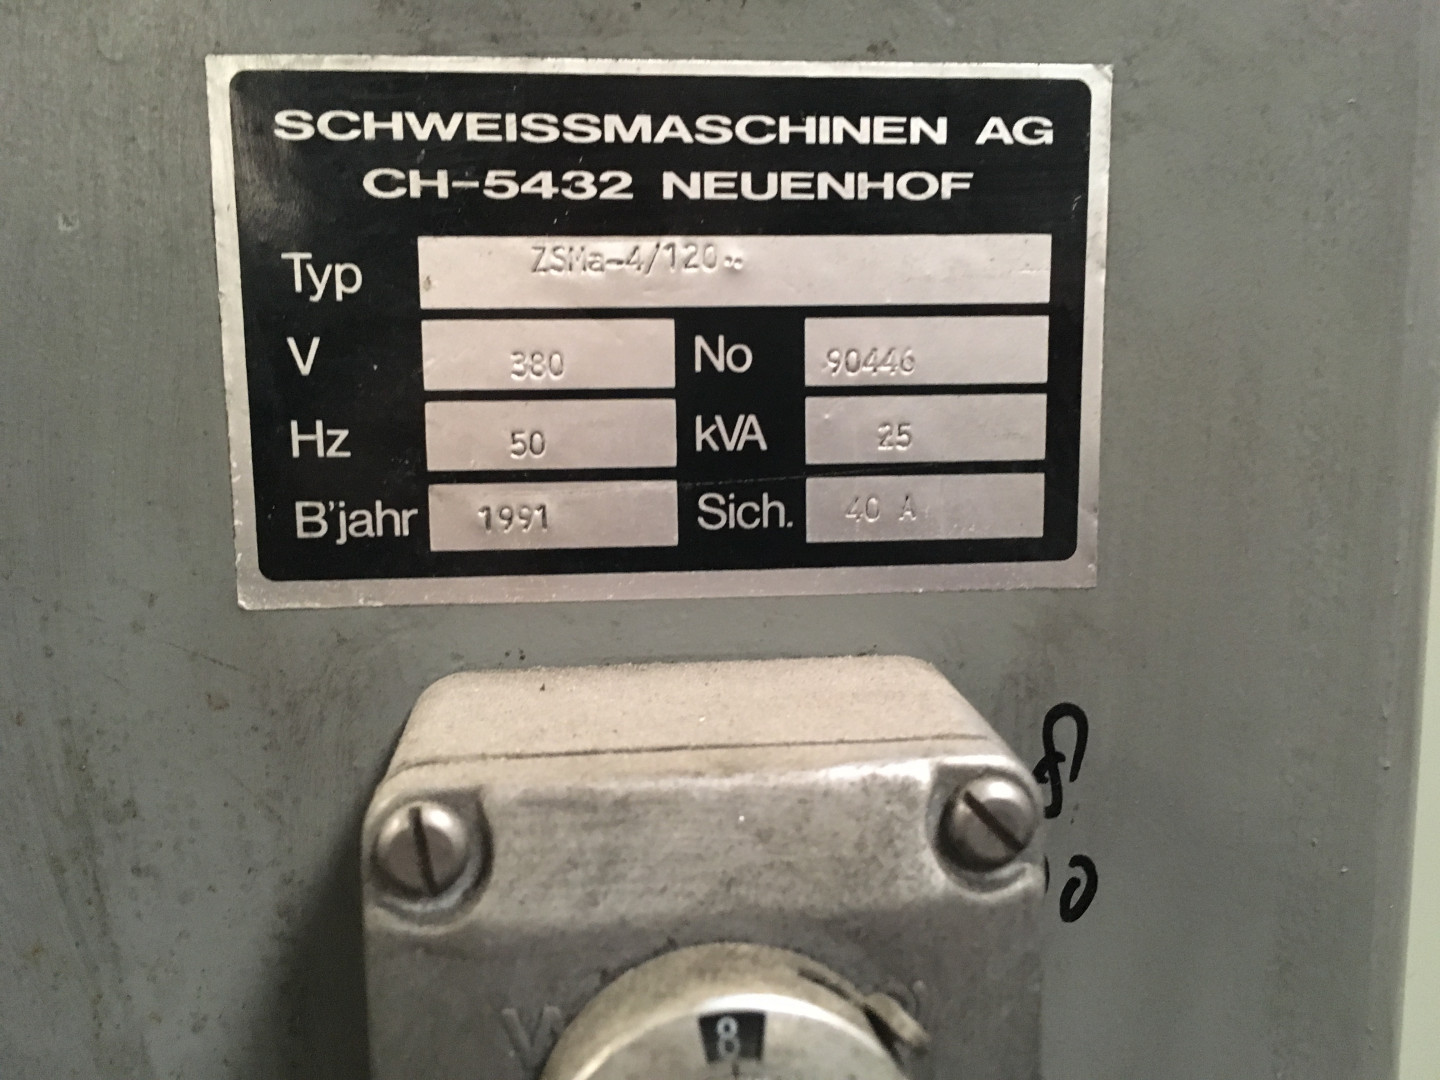 machine indication plate